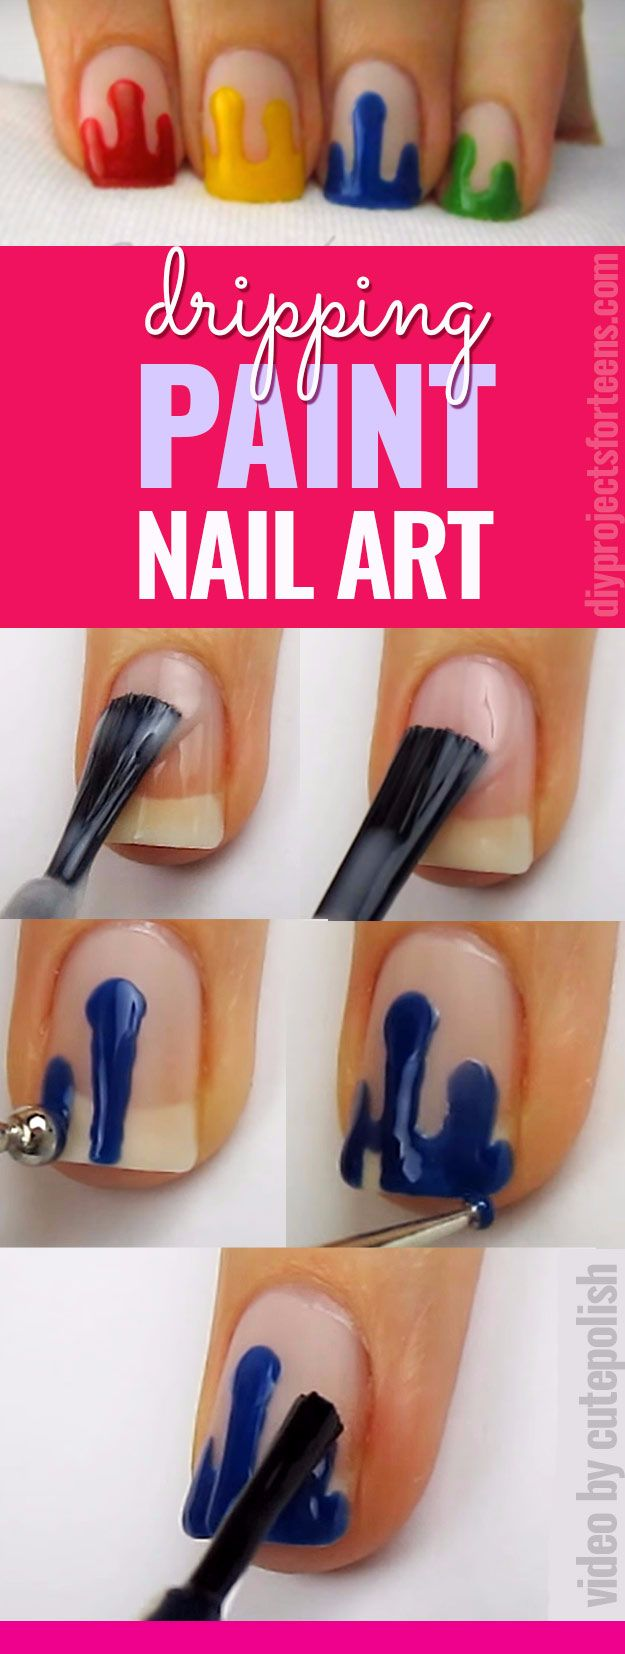 Quick Nail Art Ideas - Dripping Paint Nail Art - Easy Step by Step Nail Designs With Tutorials and Instructions - Simple Photos Show You How To Get A Perfect Manicure at Home - Cool Beauty Tips and Tricks for Women and Teens